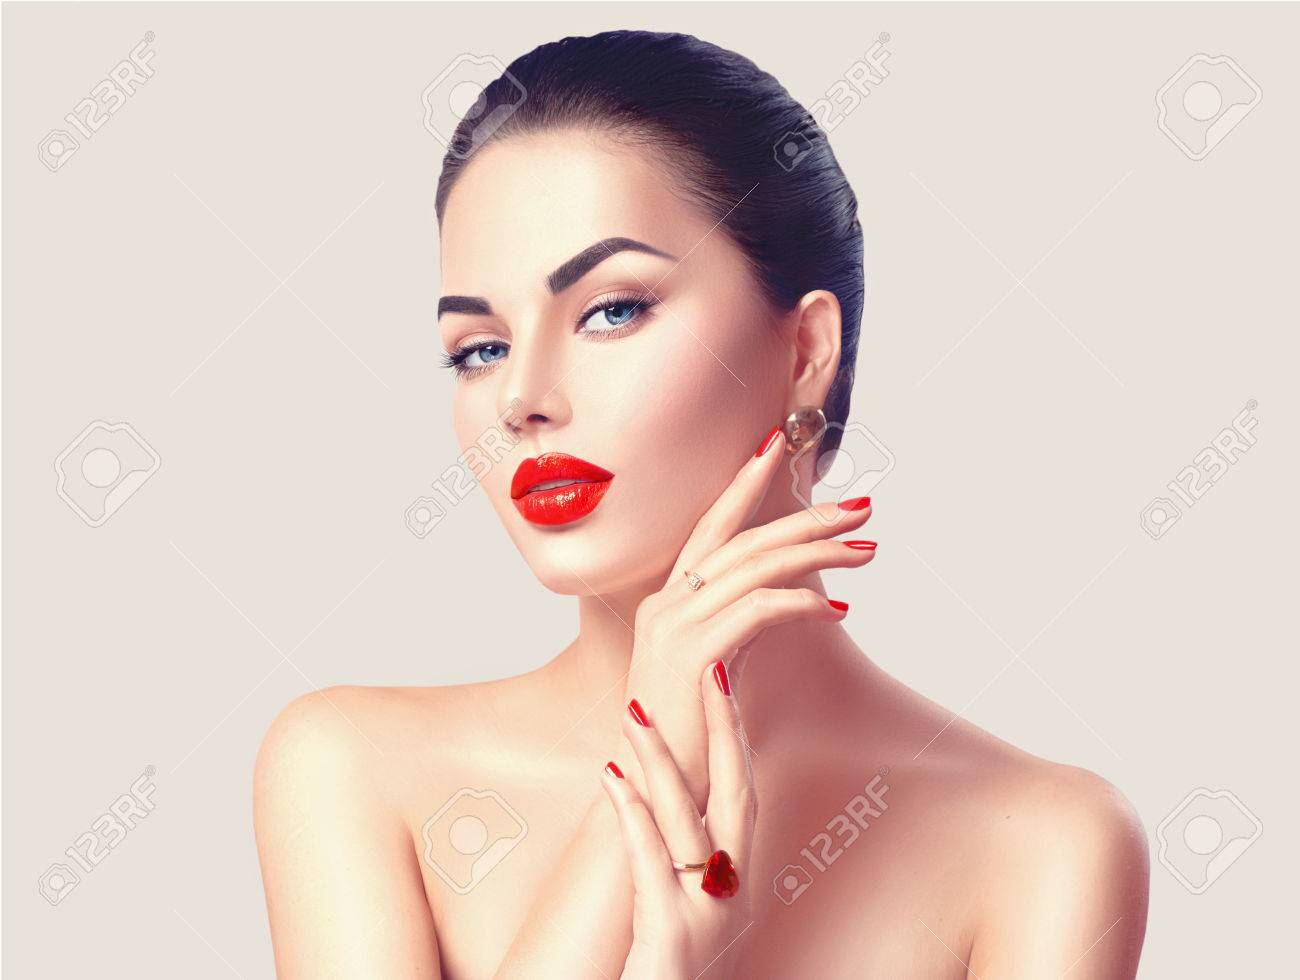 Sexy woman with red lips and nails closeup. Makeup concept Banque d'images - 73661794